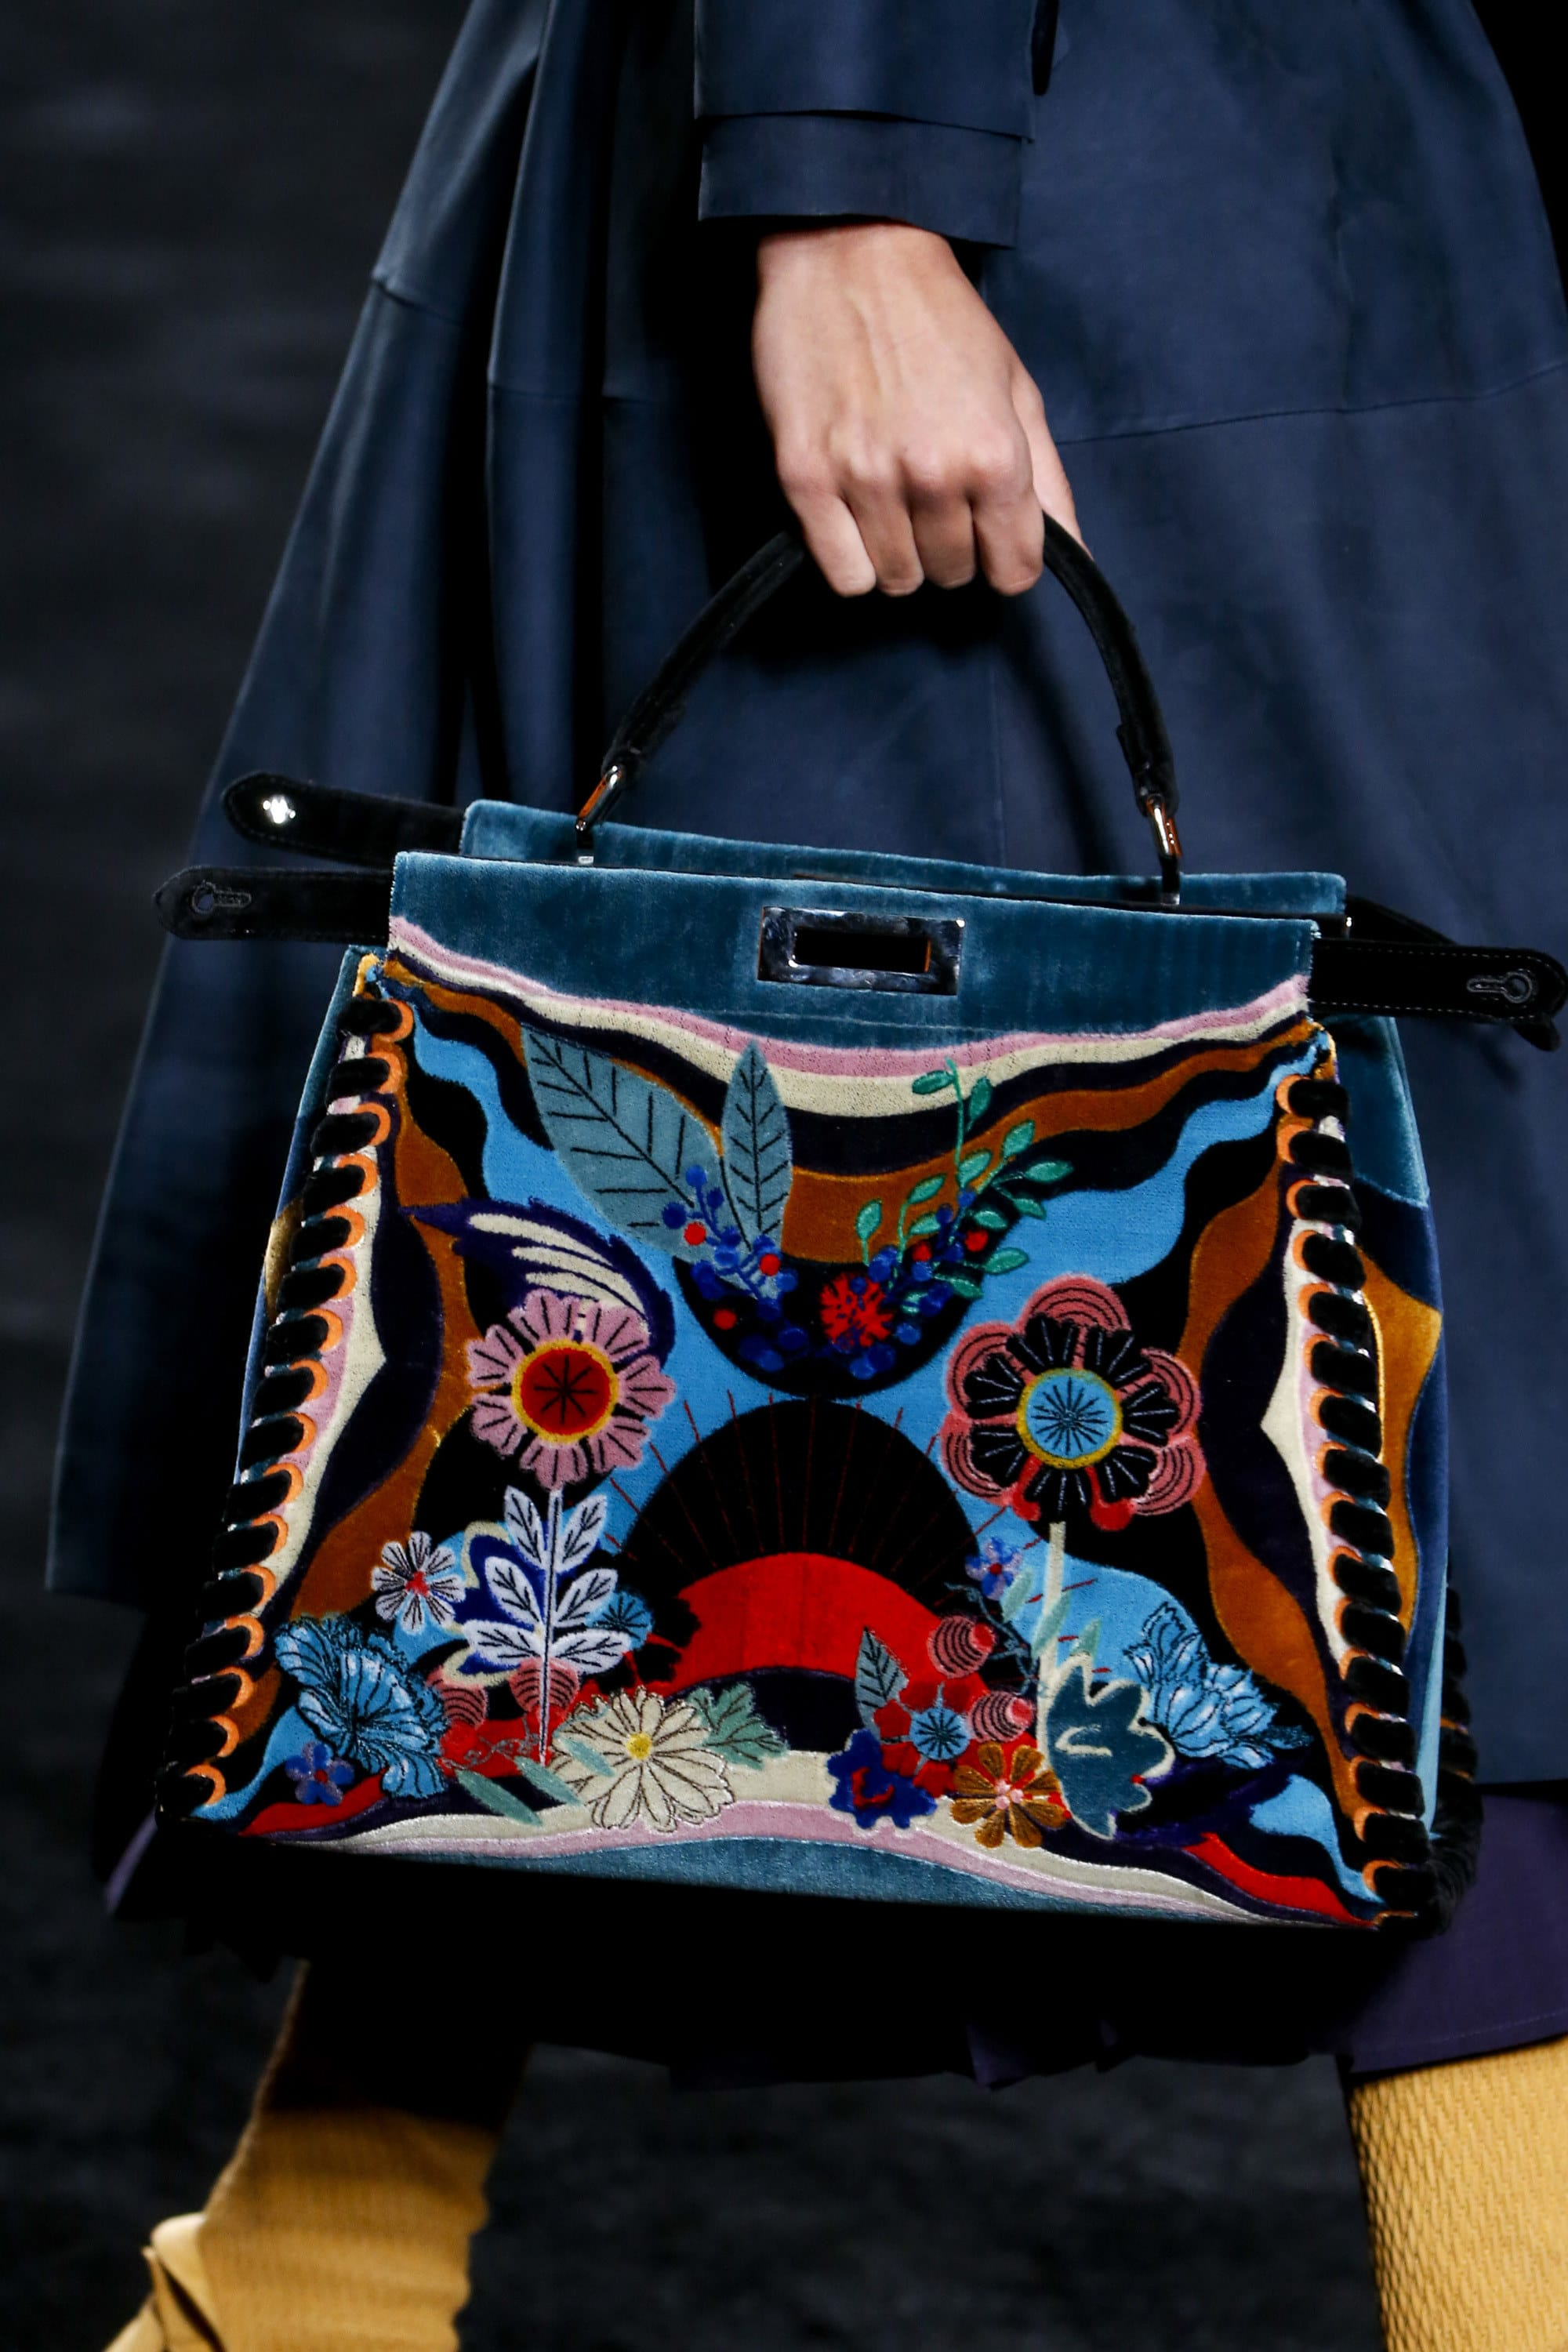 Fendi Fall Winter 2016 Runway Bag Collection Spotted Fashion